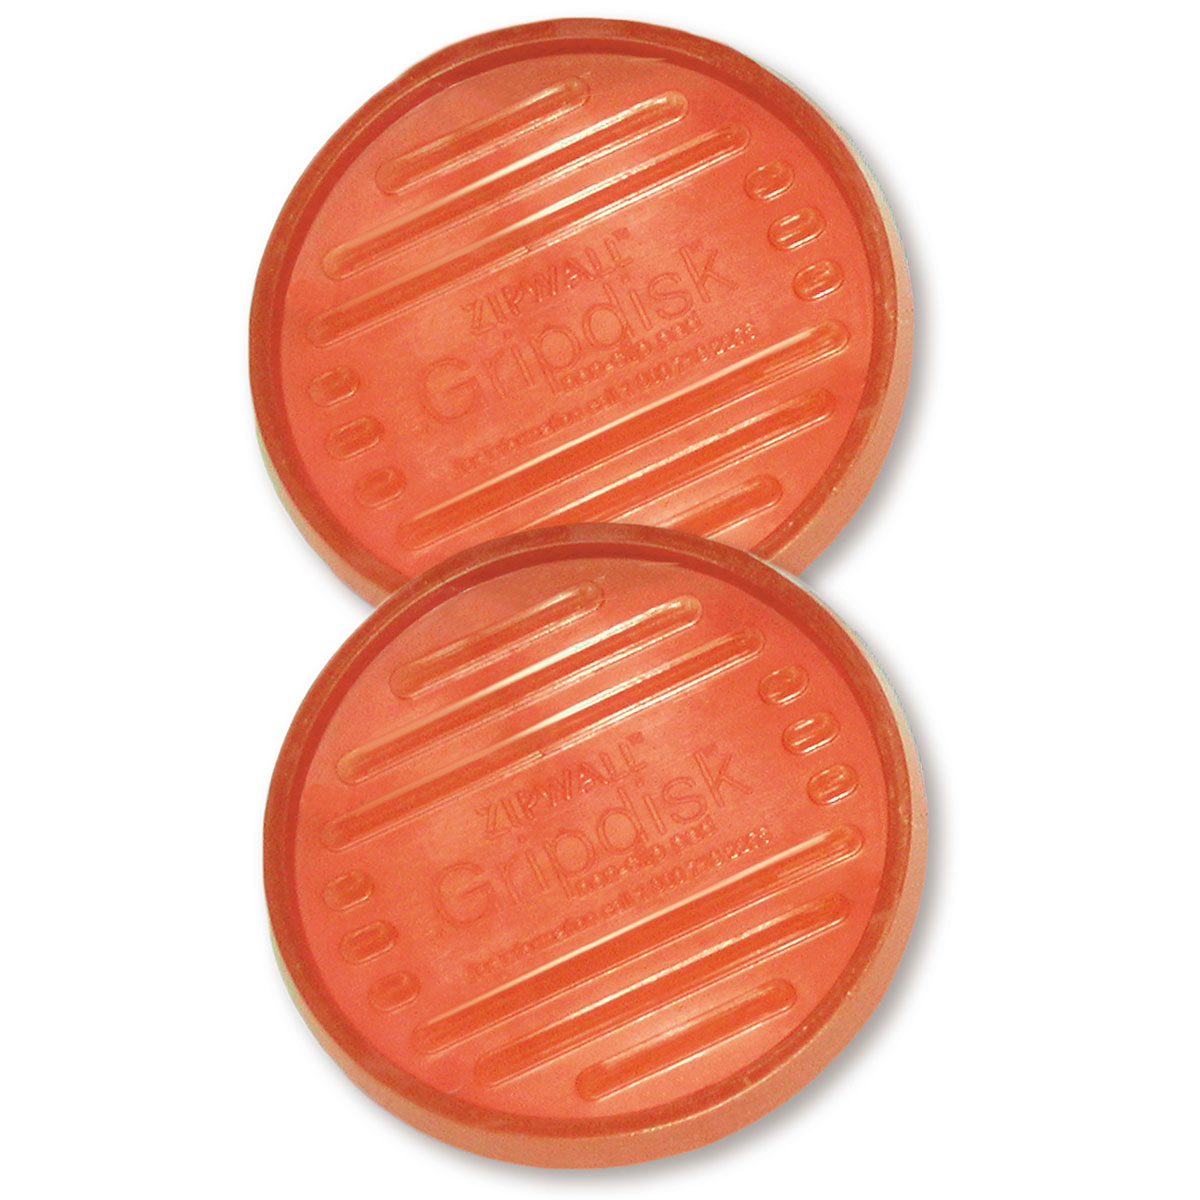 ZipWall GD2 Replacement Grip Disks - 2 Pack